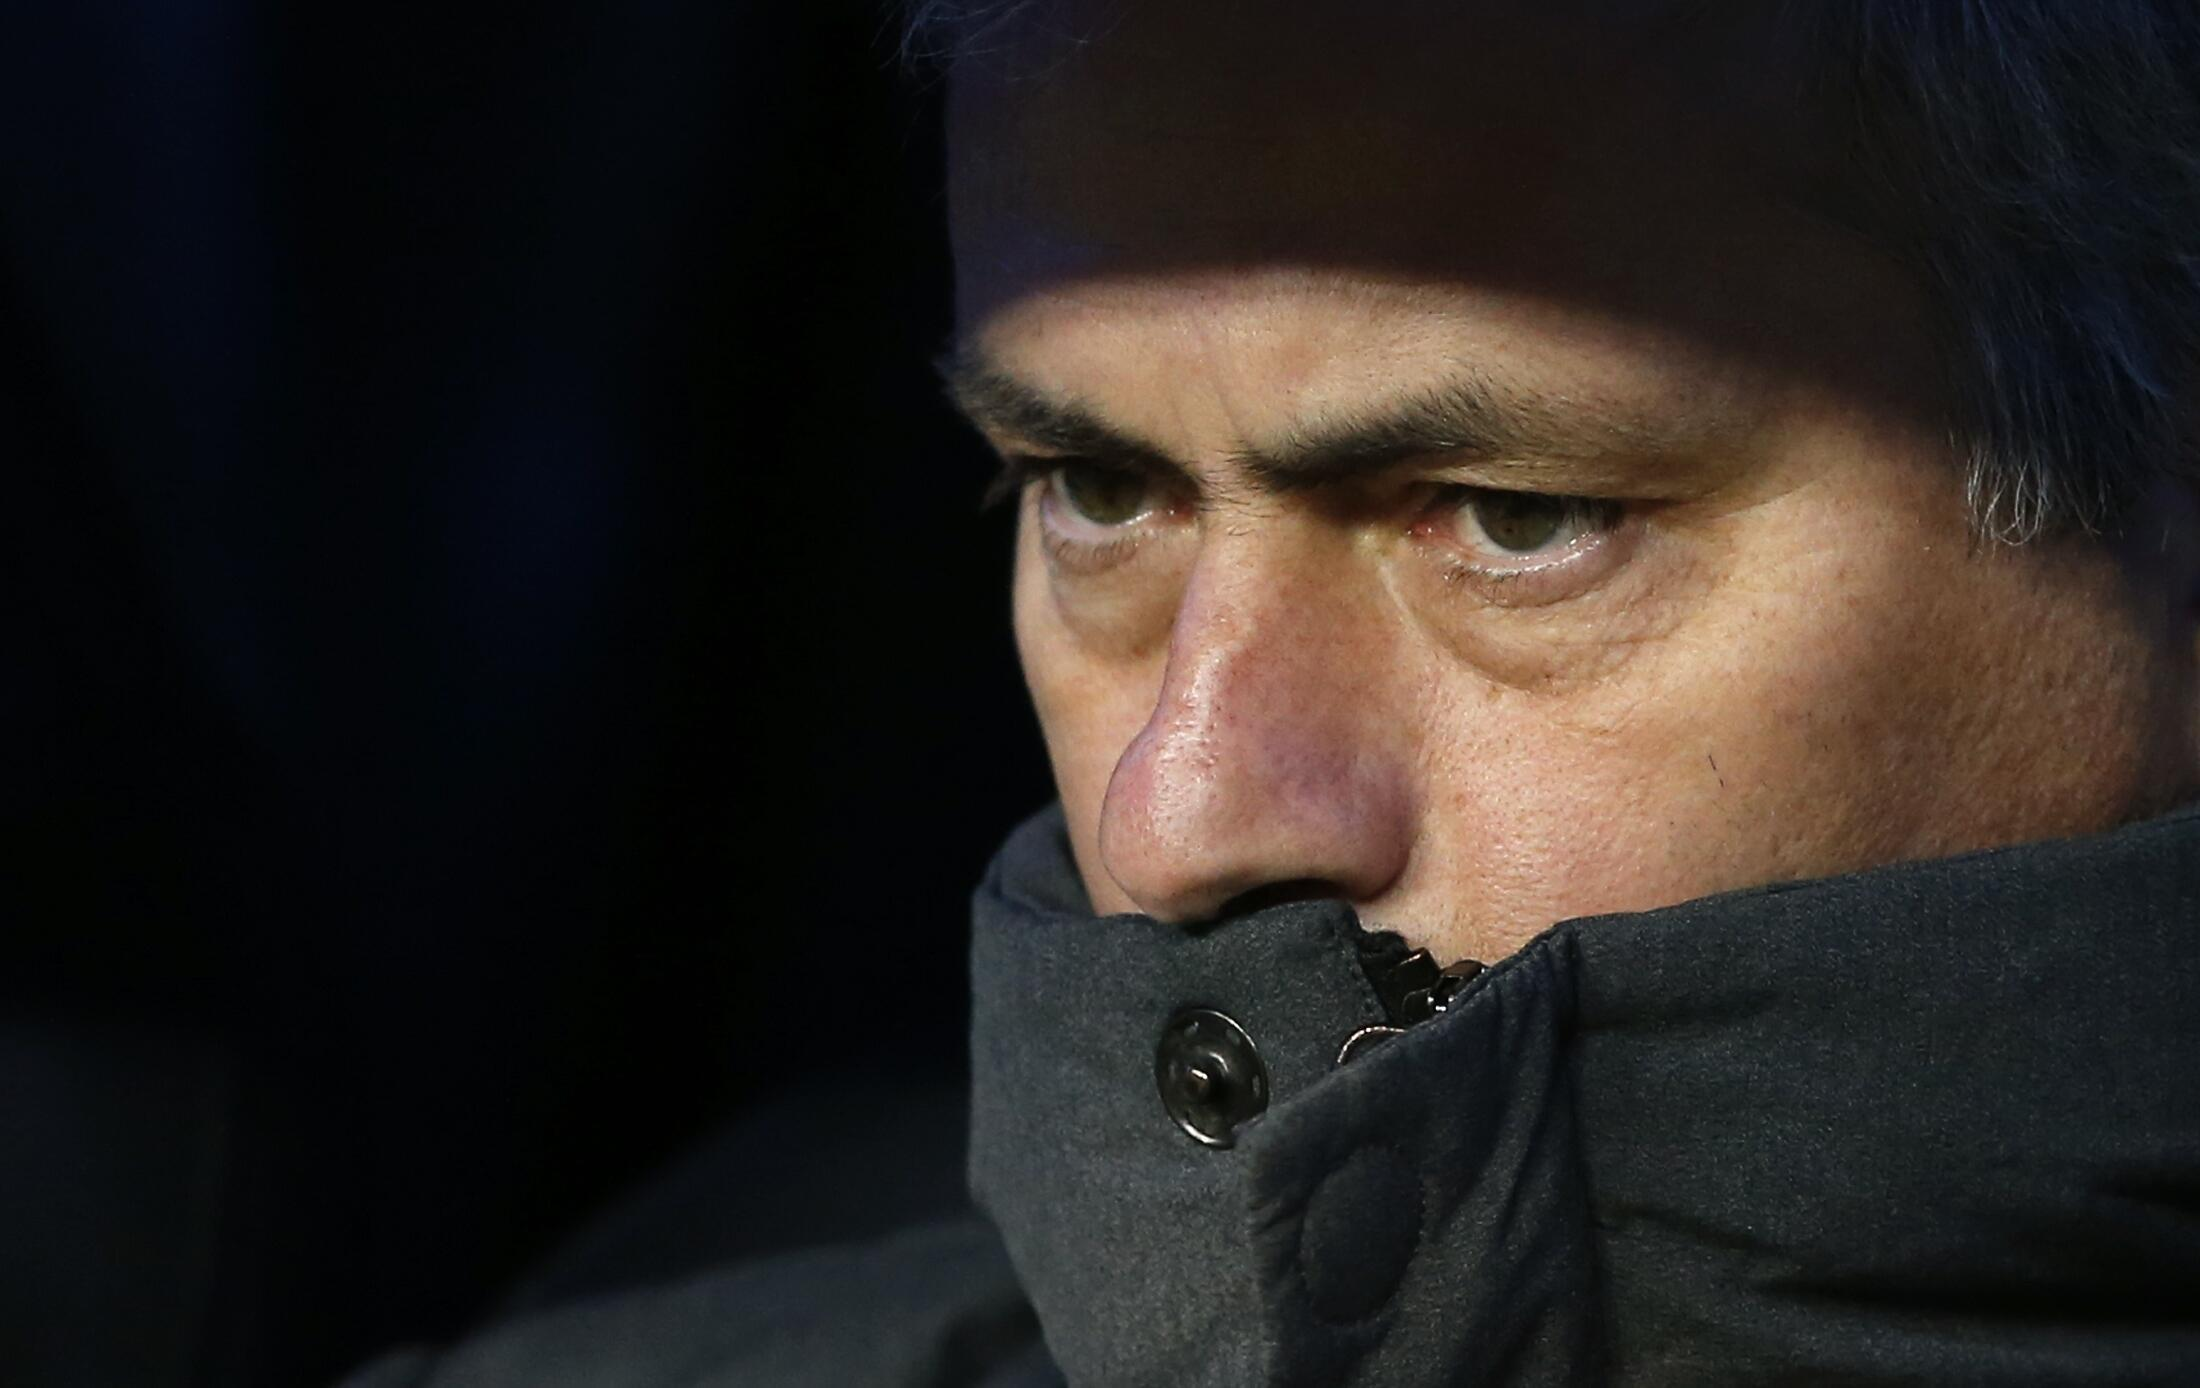 Jose Mourinho was given his marching orders four months into the 2015/16 Premier League season.